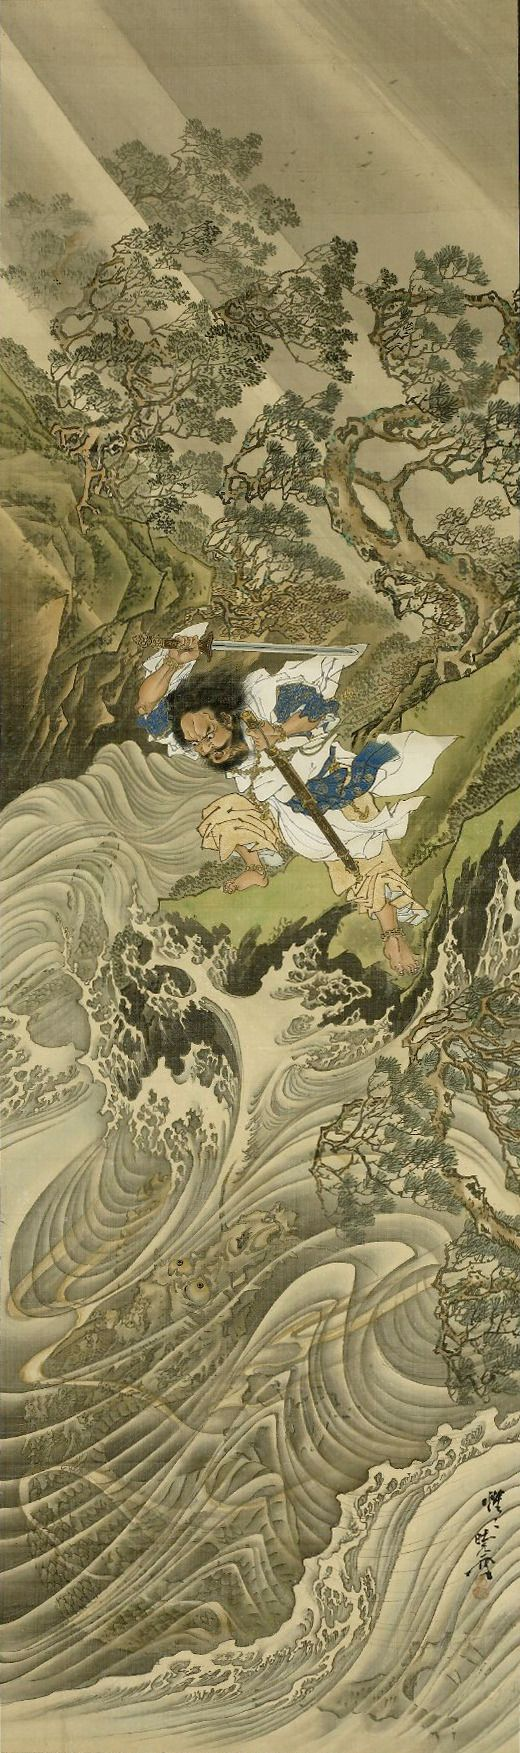 Kawanabe Kyōsai (河鍋 暁斎, May 18, 1831–April 26, 1889)  Susano-o no Mikoto subduing Yamata no Orochi, eight-headed serpent in form of dragon, coming up out of raging sea on storm-swept rocky coast.  Meiji period, 1887  TYPE: Hanging scroll, color on...